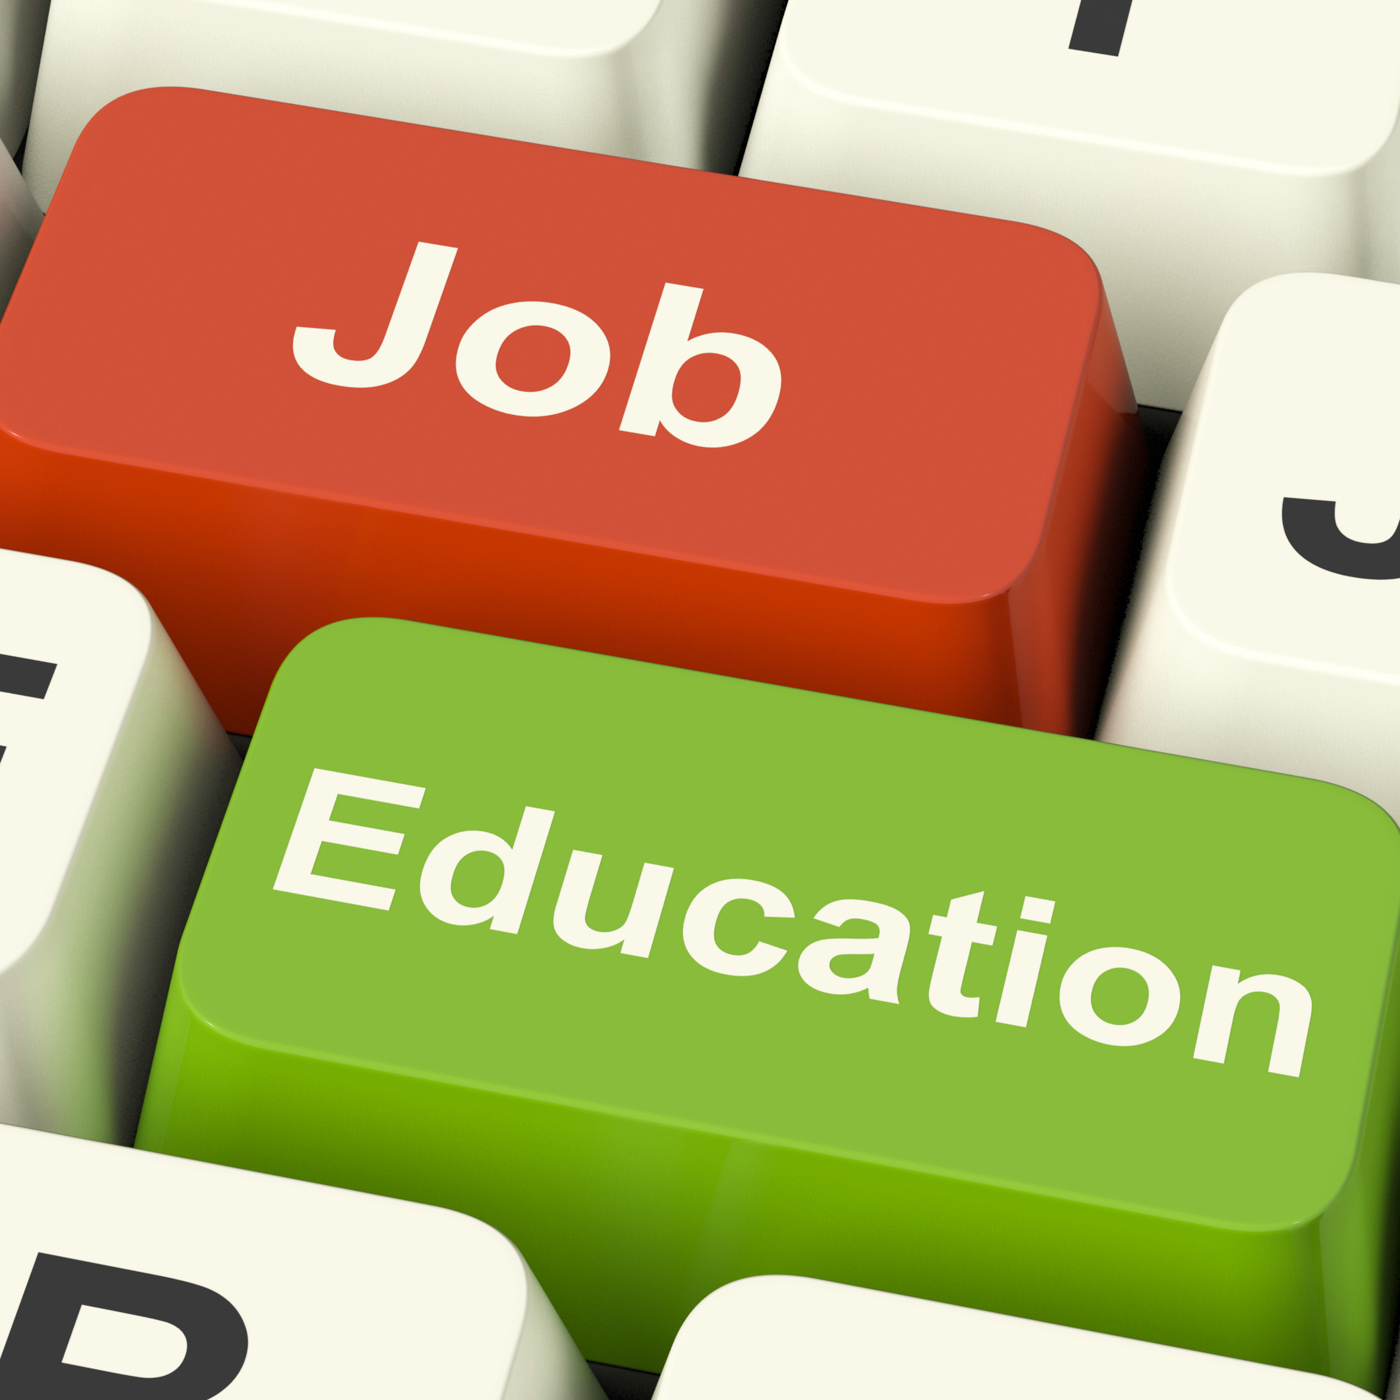 Job And Education Computer Keys Showing Choice Of Working Or Studying, Advice, Unemployed, School, Student, HQ Photo